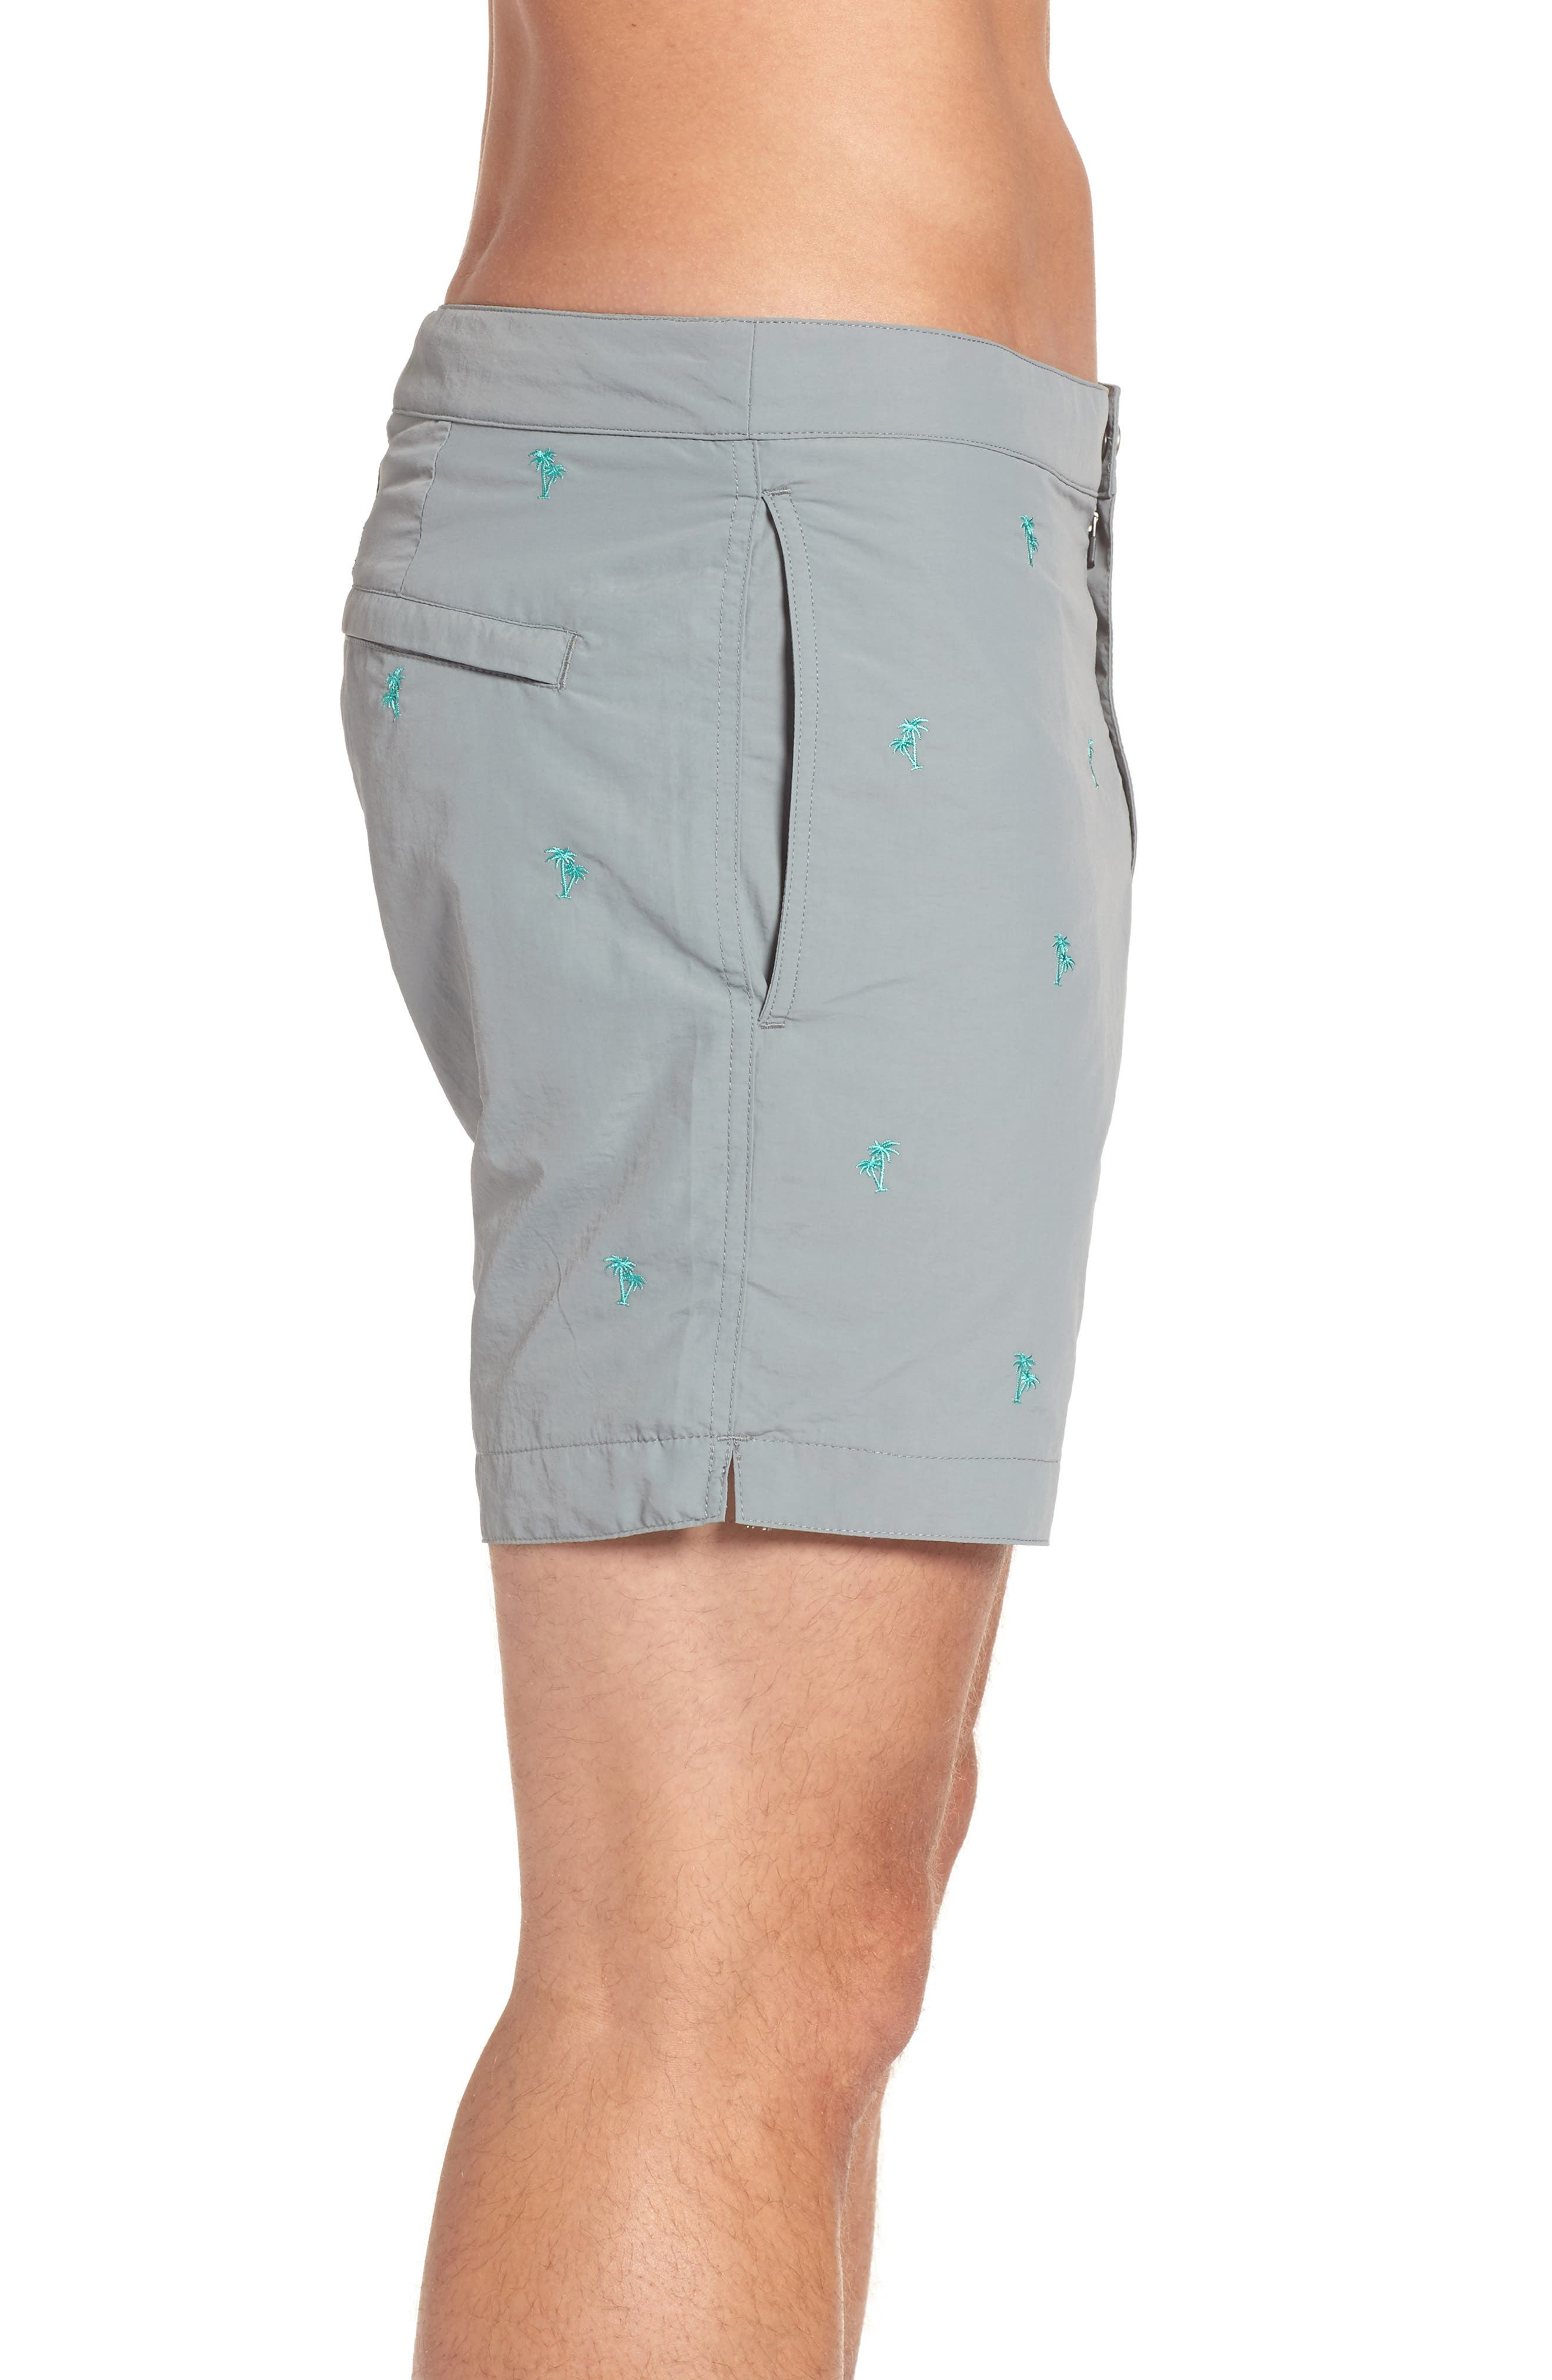 Aruba Tailored Fit Embroidered Palm Swim Trunks,                             Alternate thumbnail 3, color,                             031